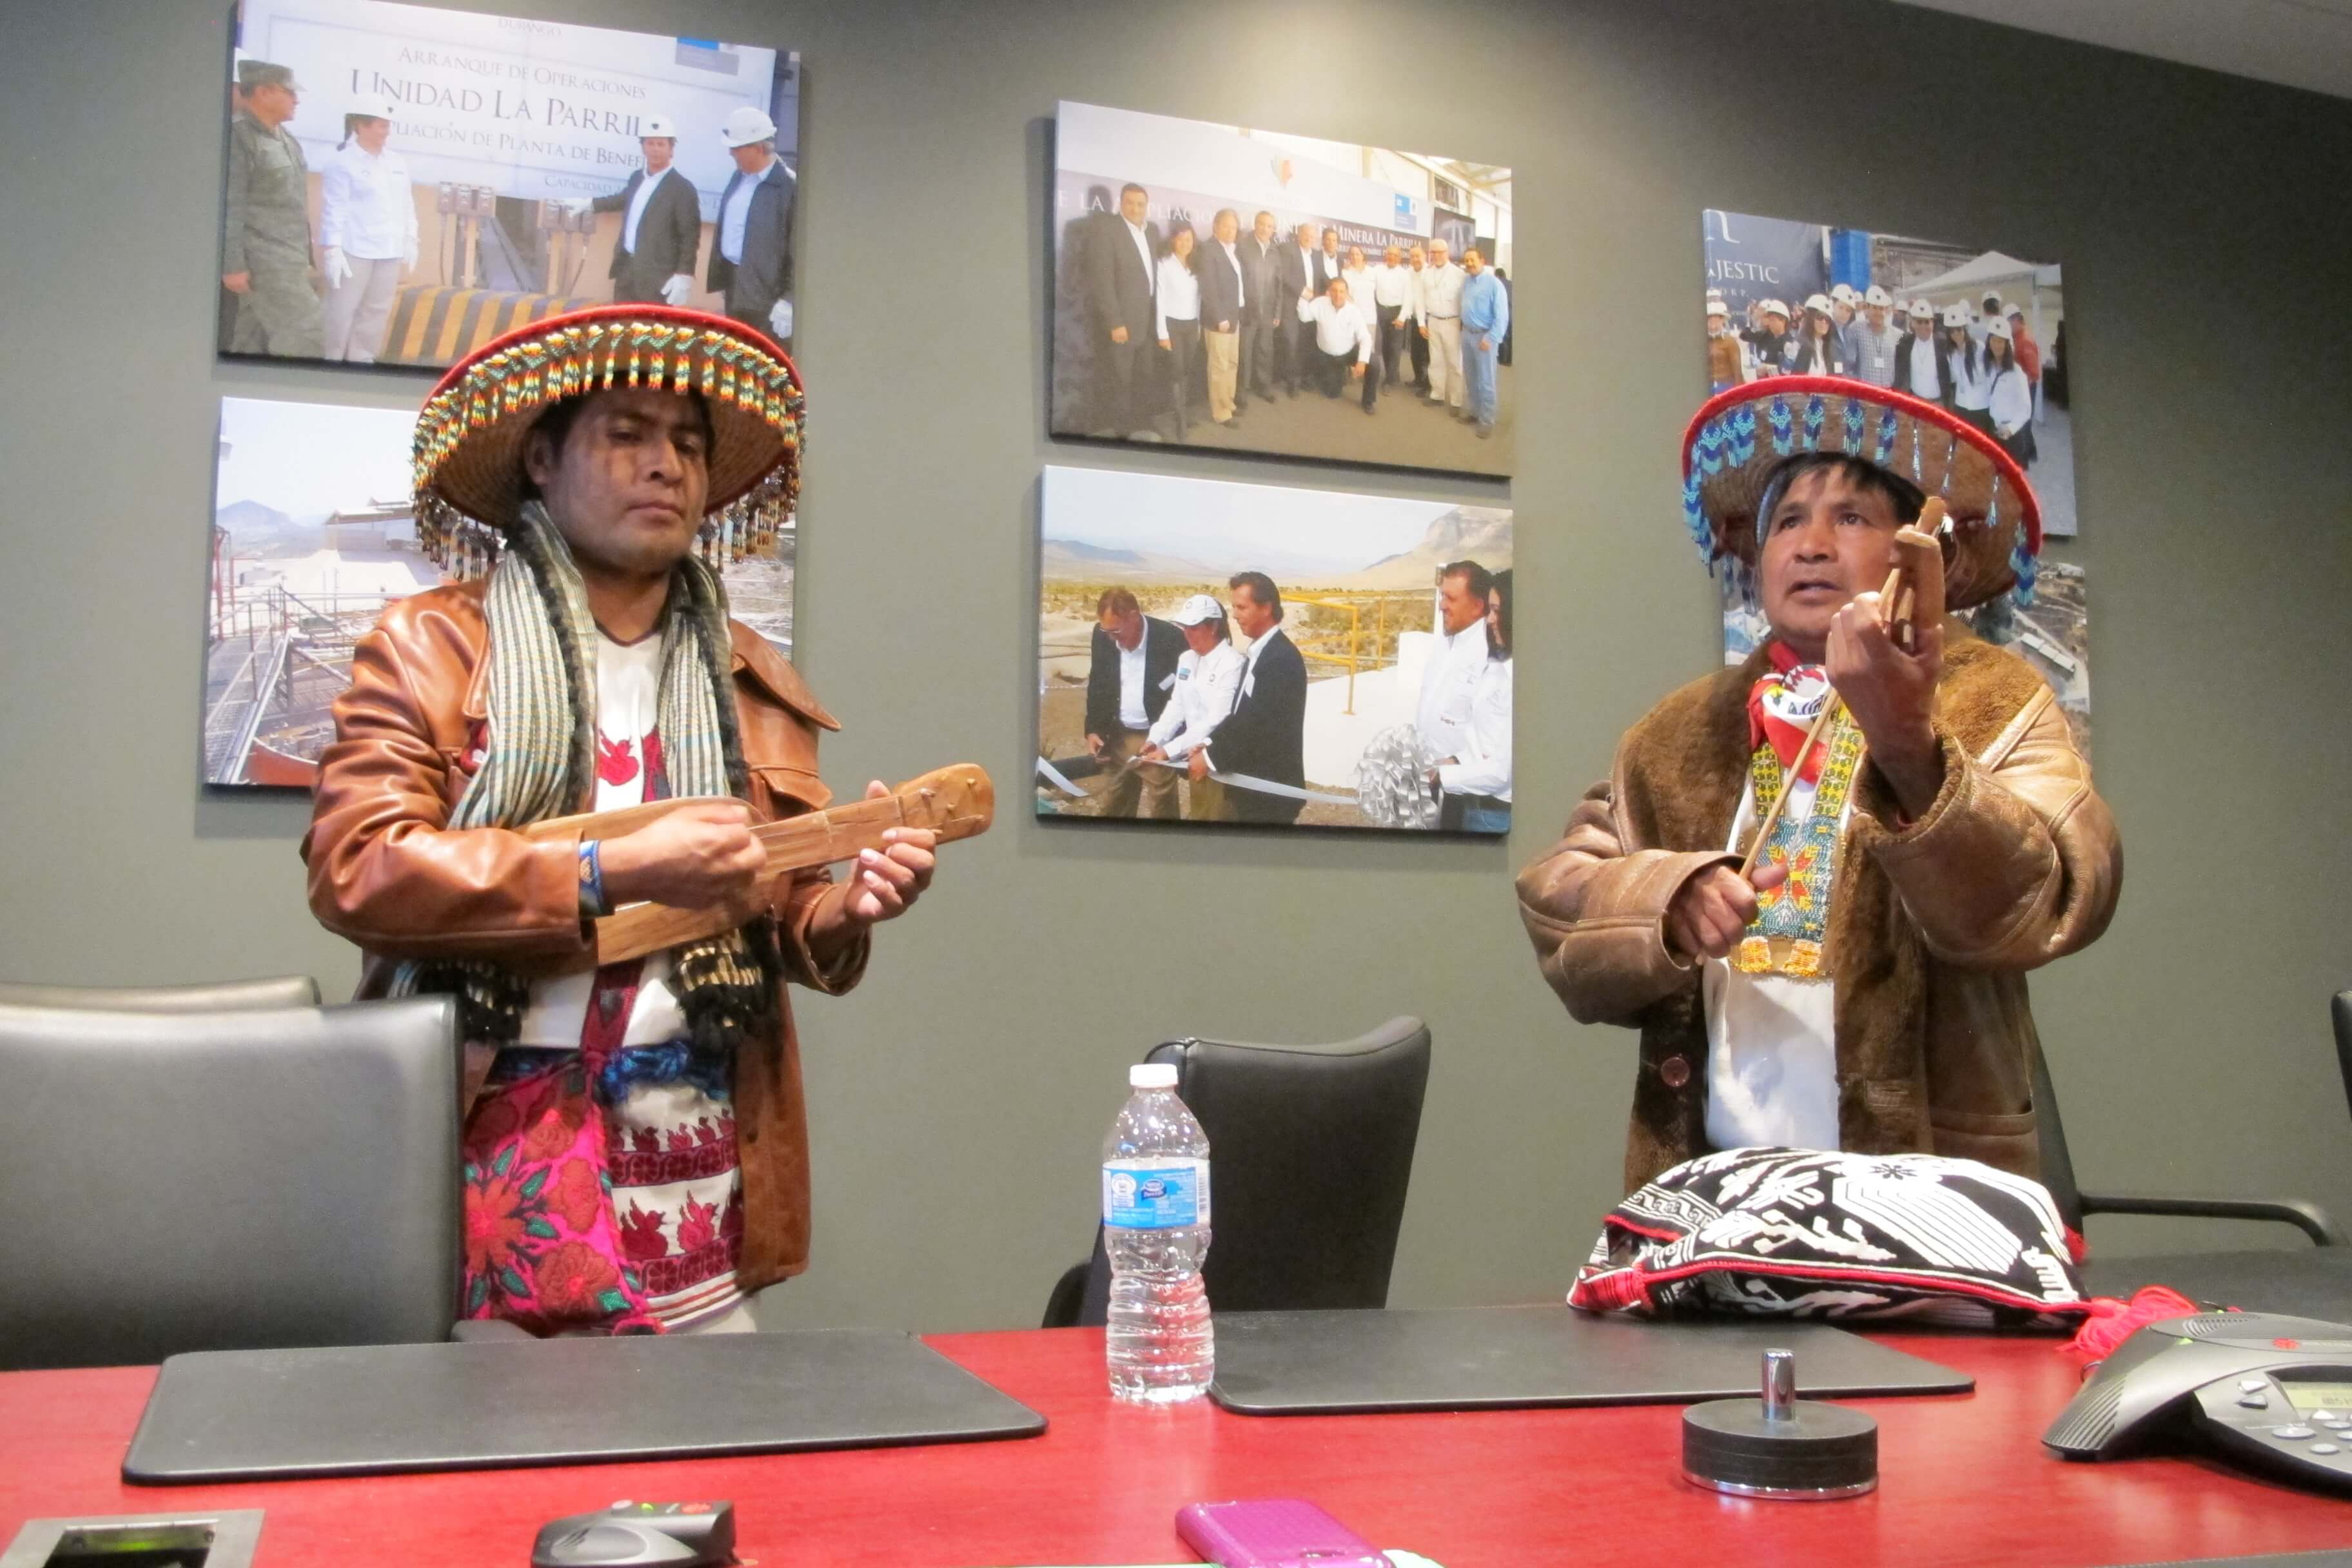 Enrique Ramirez, left, and Jose Luis Ramirez deliver a musical message to the management of First Majestic Silver Corp. at their headquarters in Vancouver.